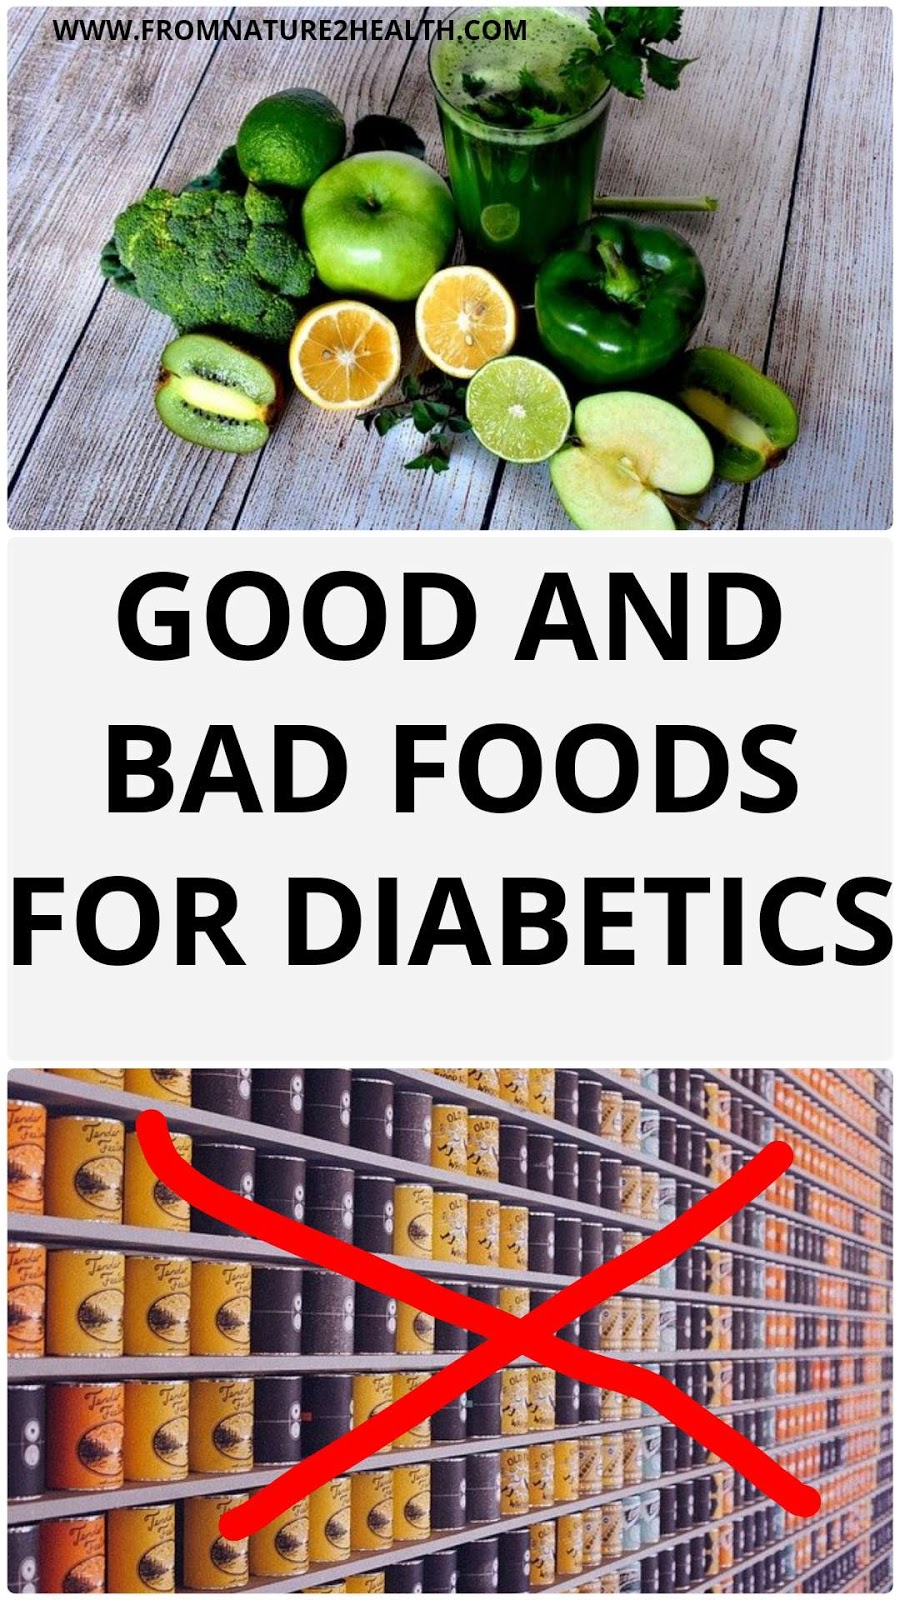 Good and Bad Foods for Diabetics